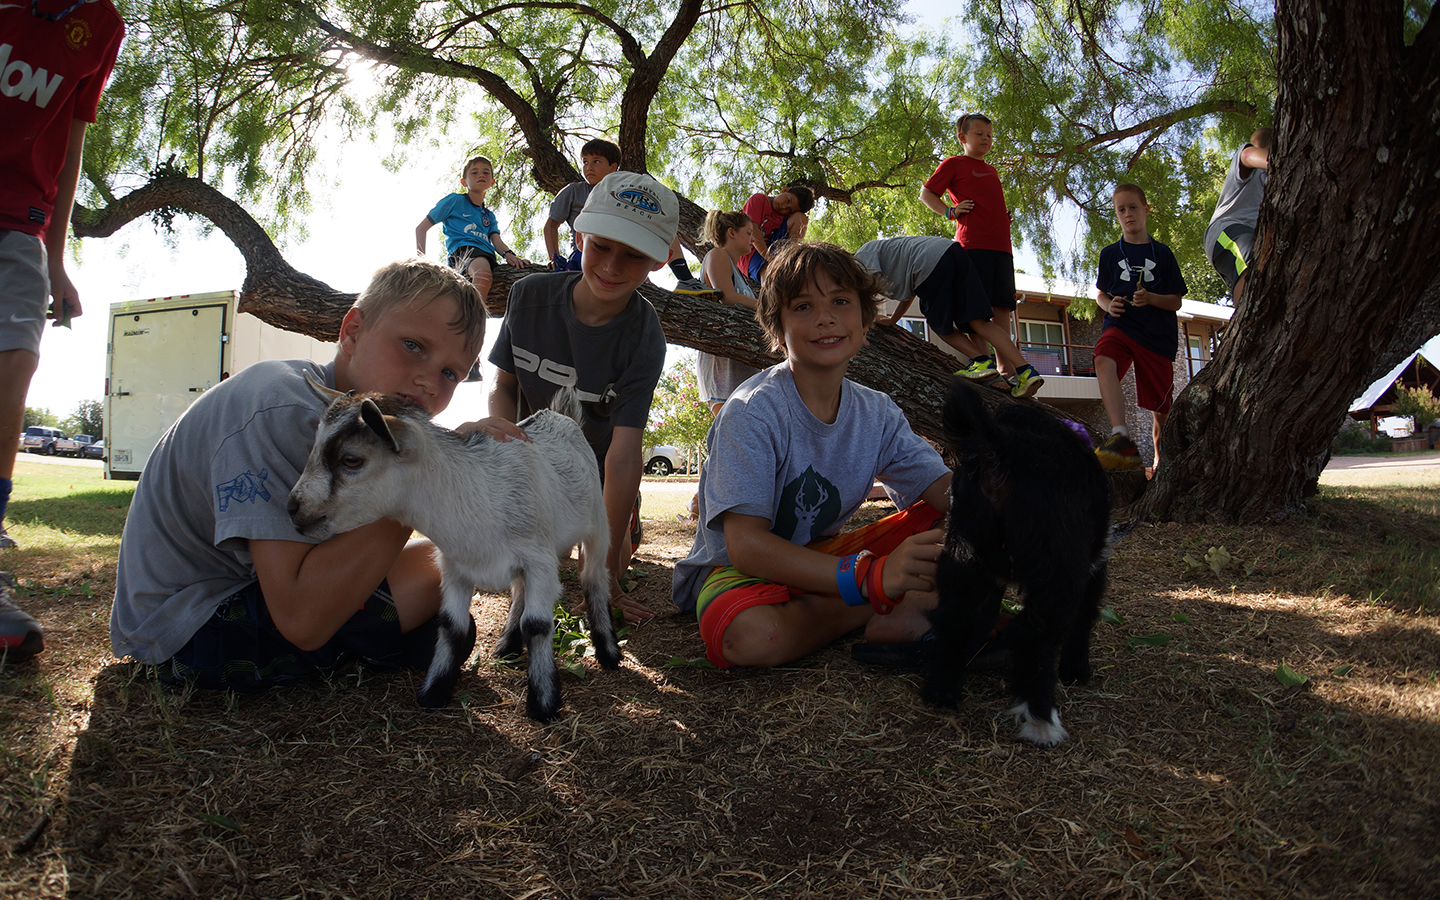 Petting zoo Camp Champions Texas Summer camp activity